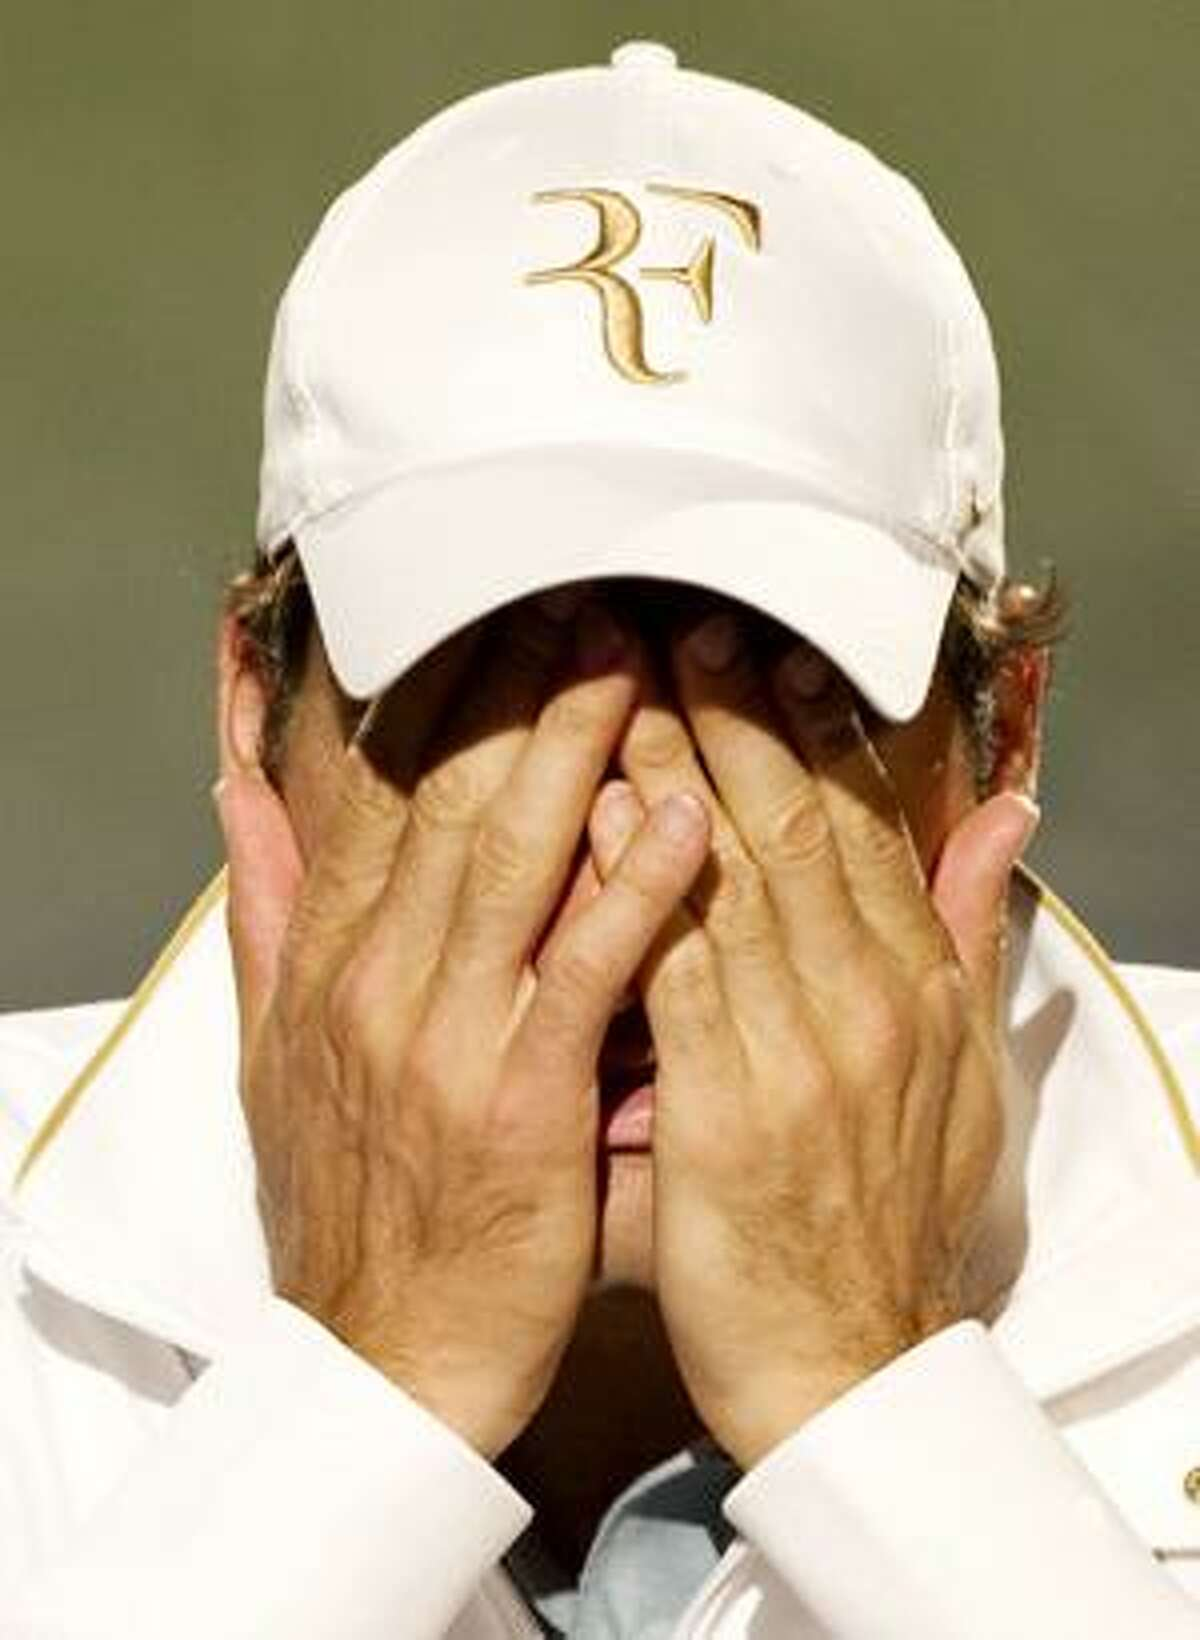 AP Defending champion Roger Federer covers his face during his press conference following his loss to Tomas Berdych in their quarterfinal at the All England Lawn Tennis Championships at Wimbledon, Wednesday.